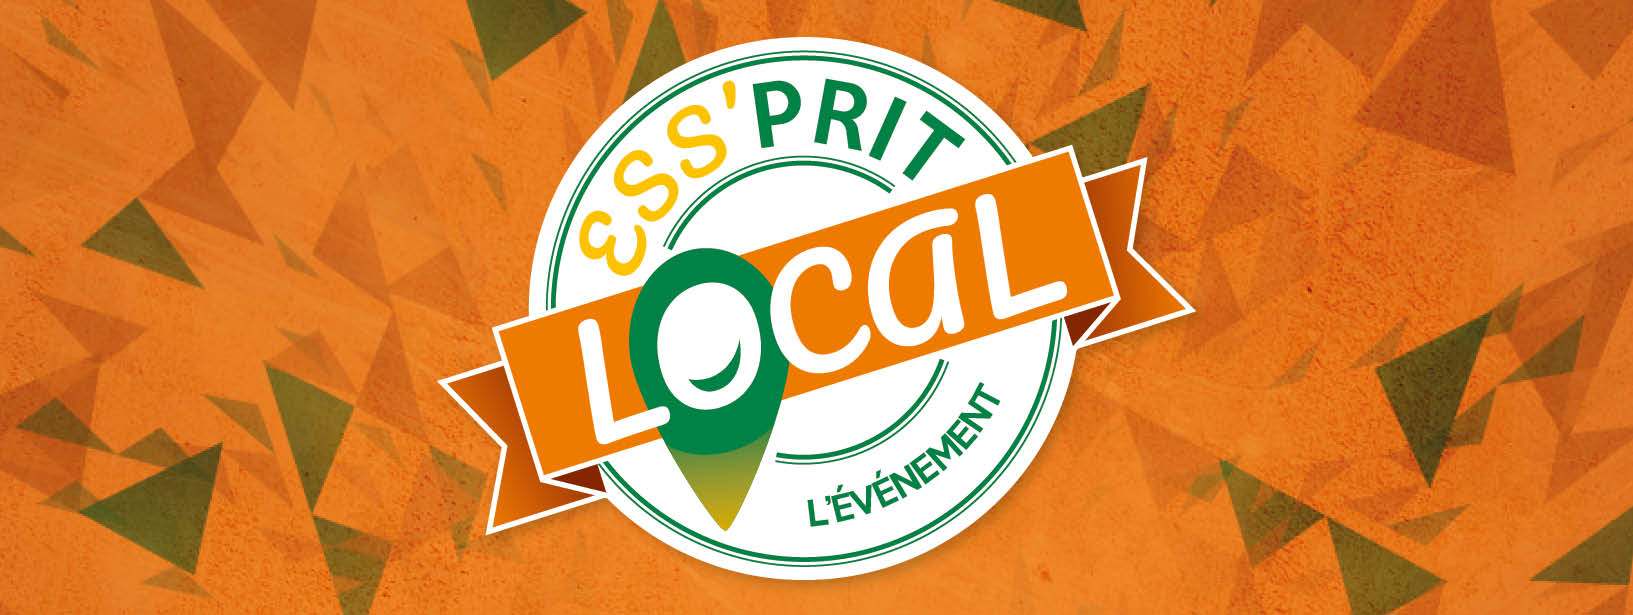 ESSPRIT local evenement ESS Voiron